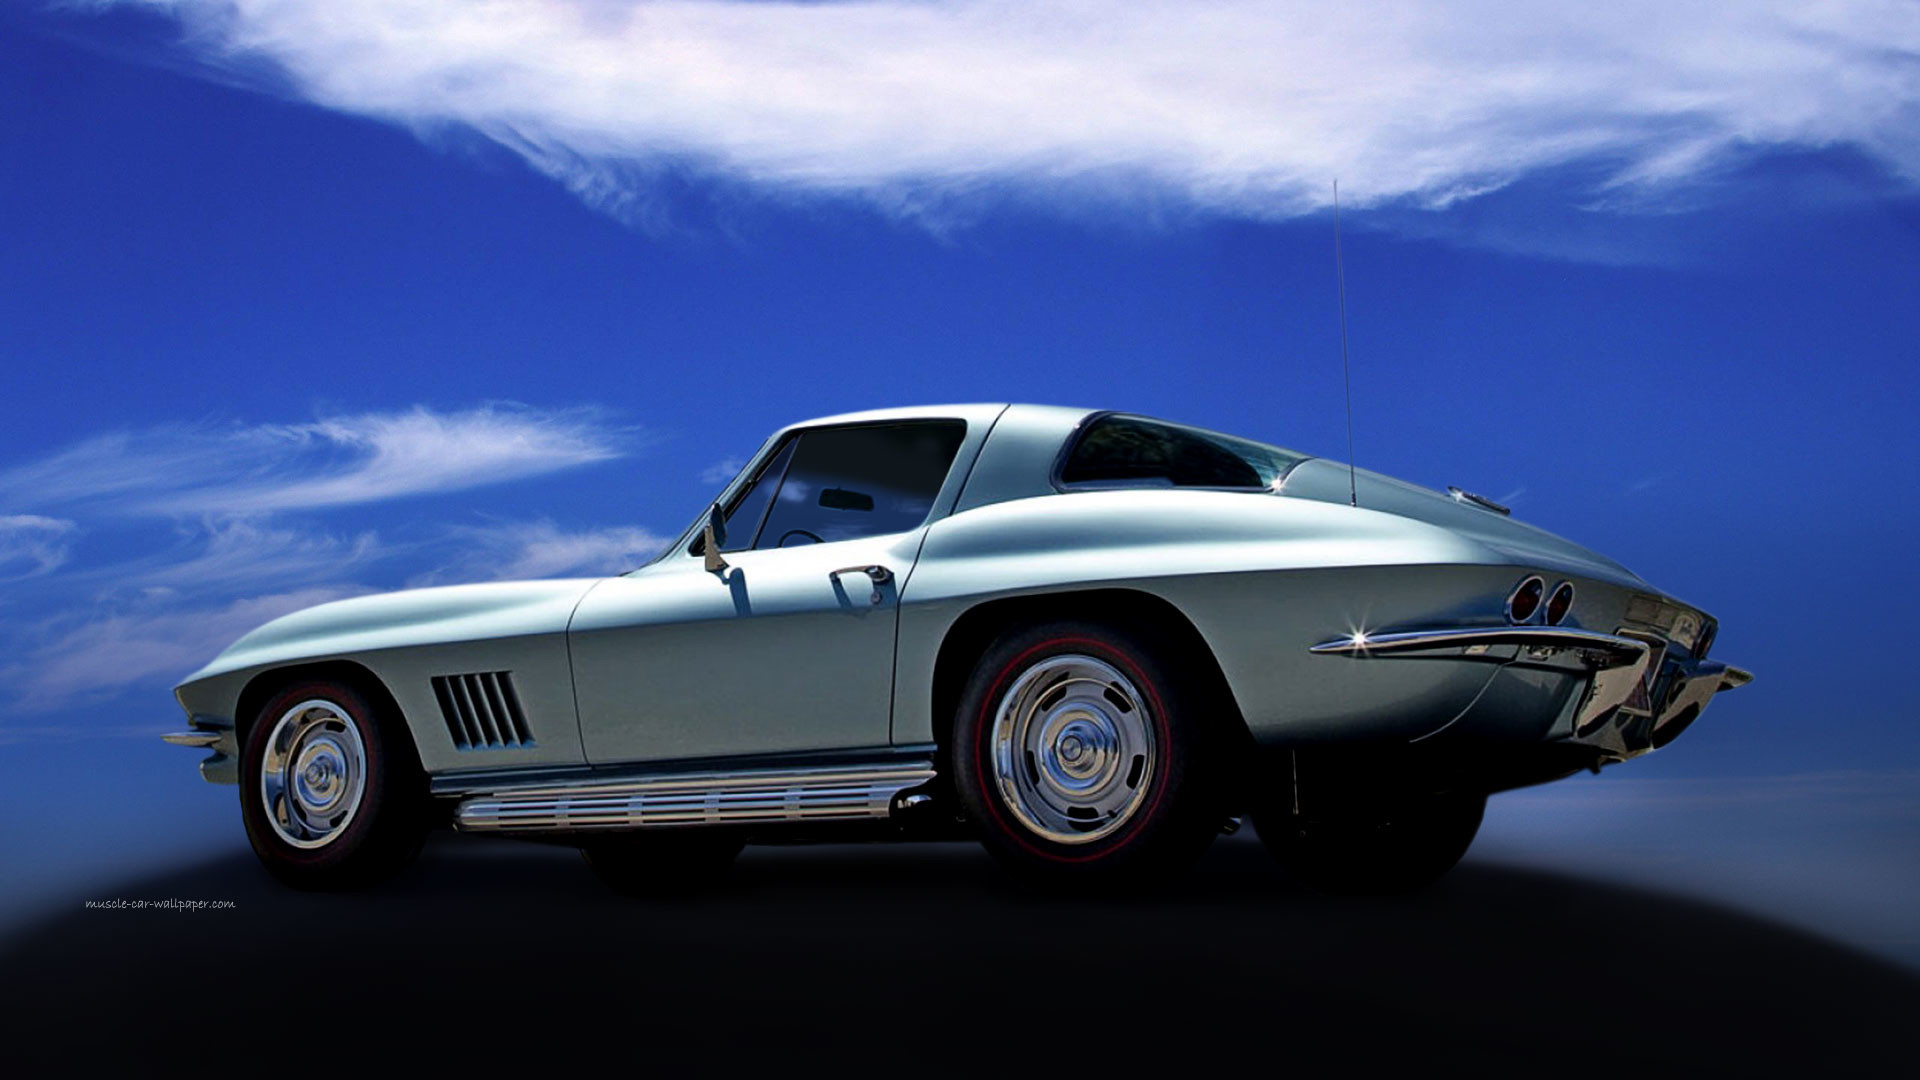 1967 Corvette Muscle Car Wallpaper | Other Sizes Available | 1920_09 |